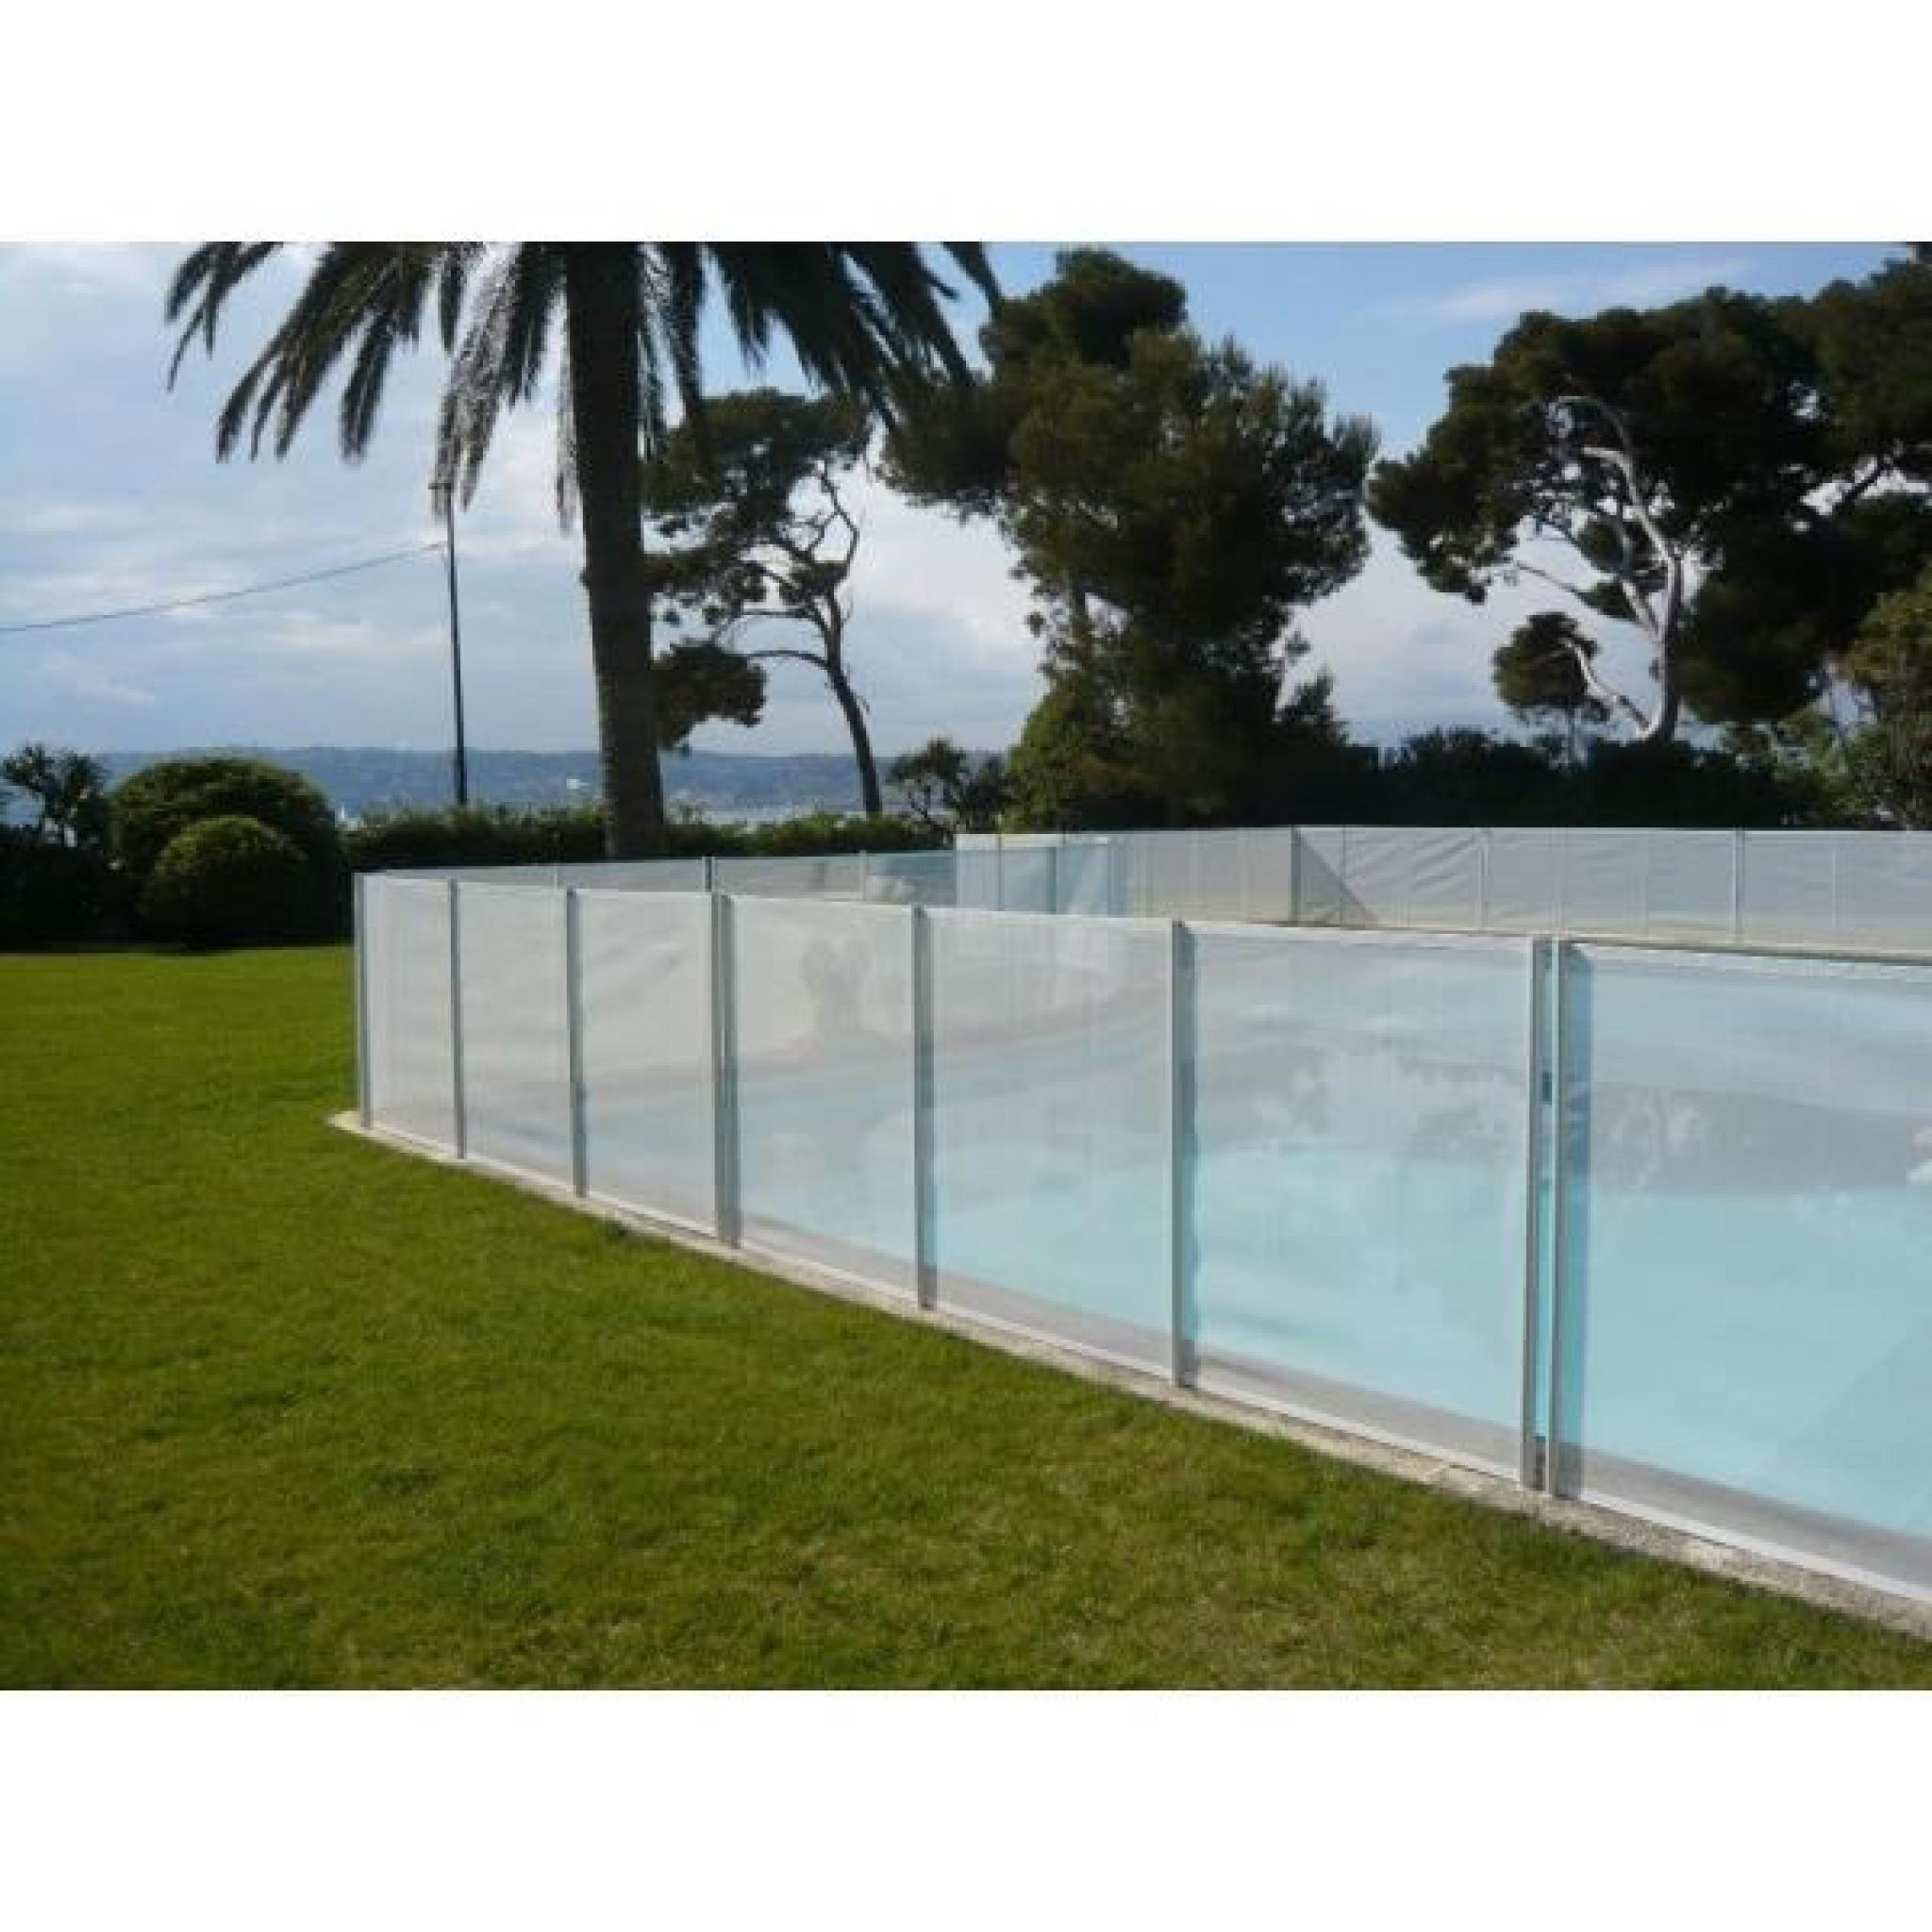 Barriere de piscine beethoven prestige blanche avec for Barriere beethoven